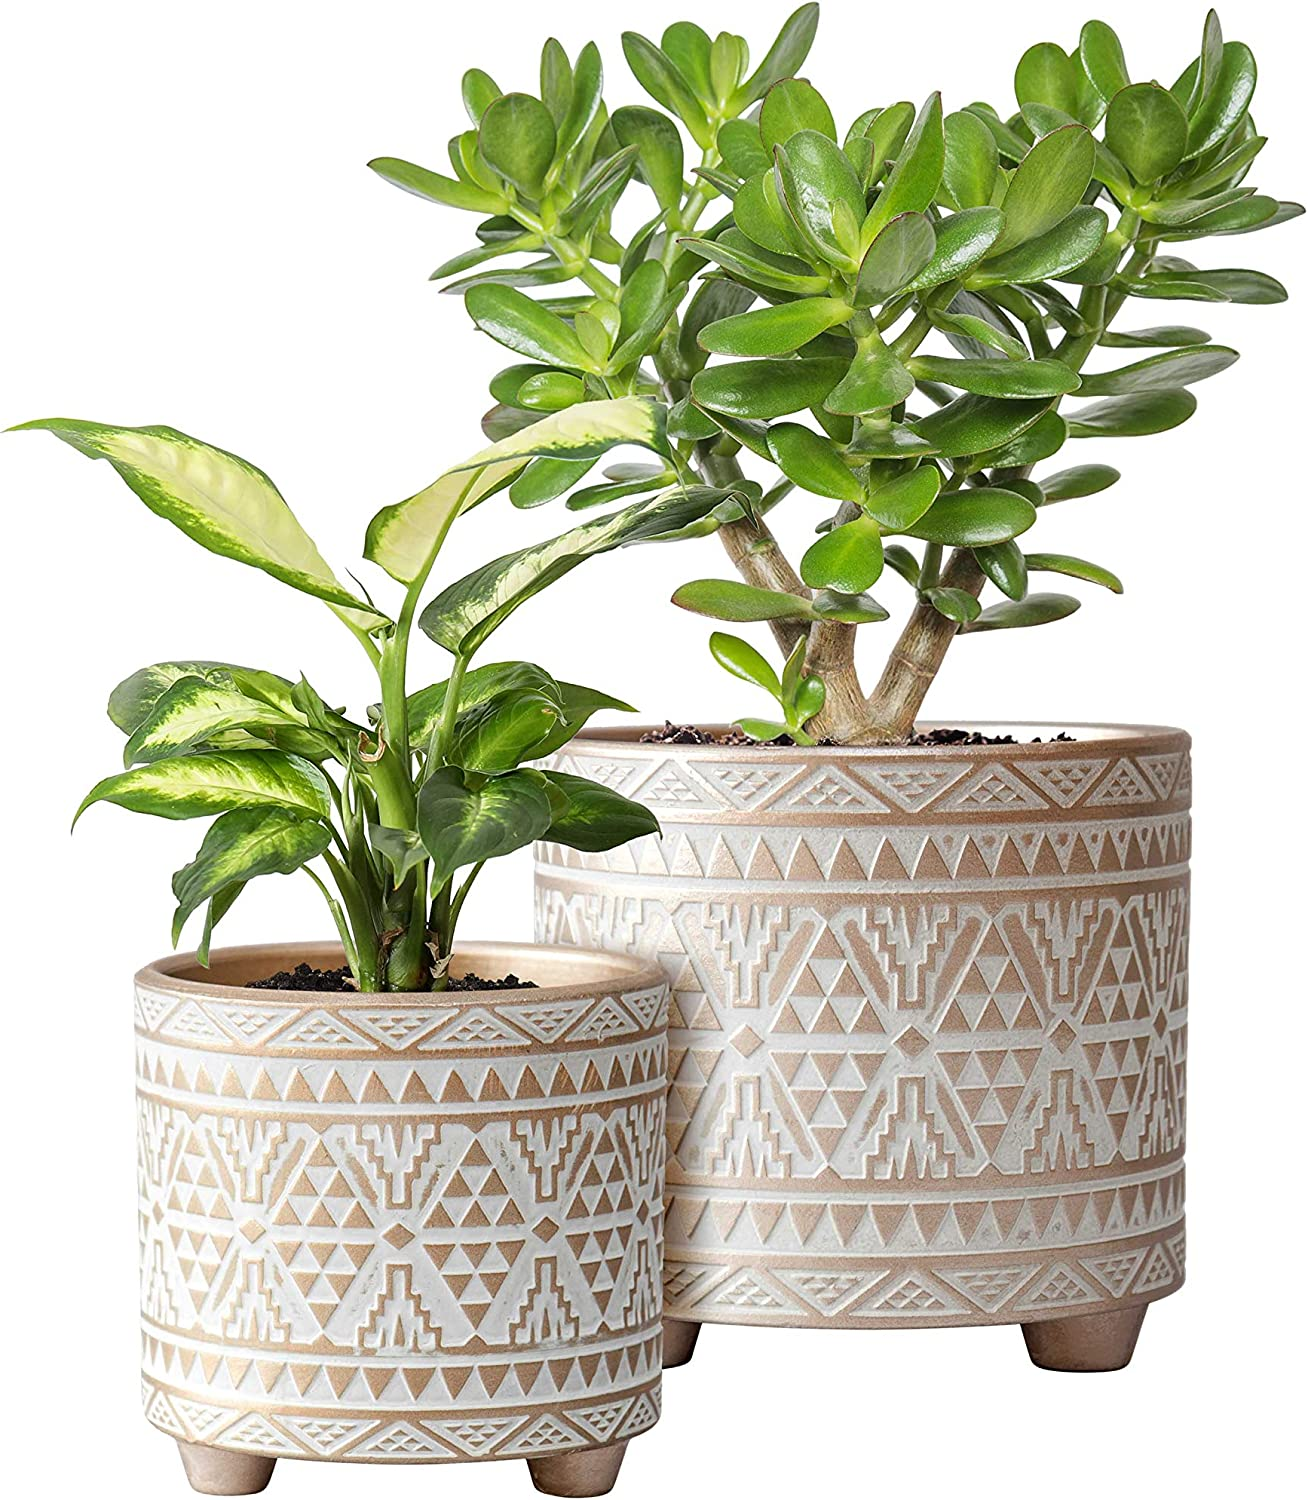 Set of 2 Planter Pots, 4 Inch & 6 Inch, Totem Design Ceramic Plants Pot with Drainage Hole, Gold/White